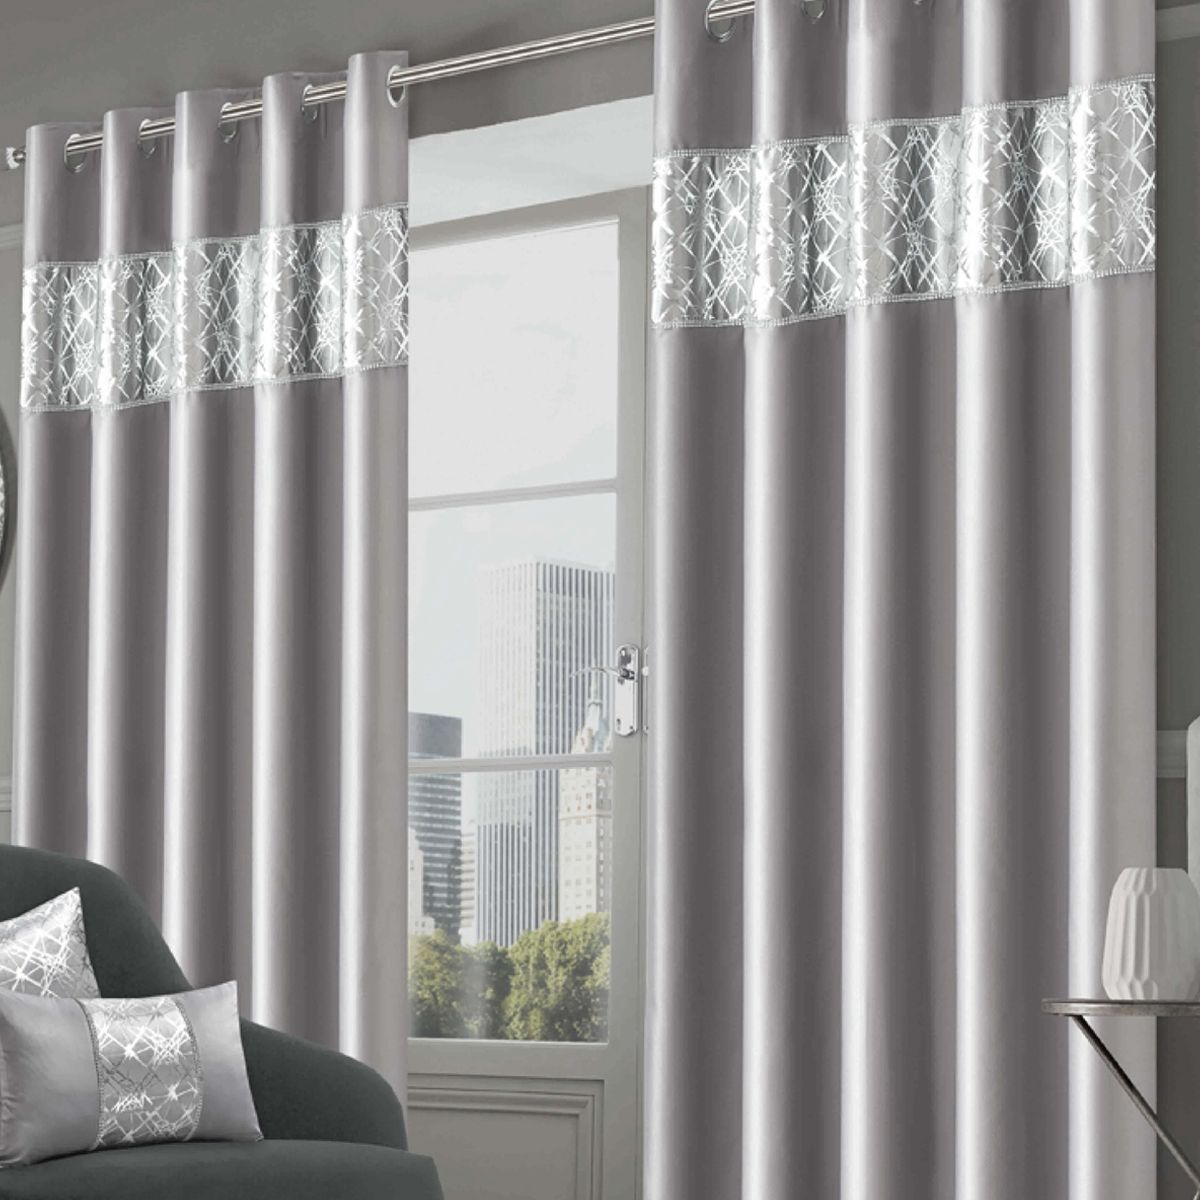 Bedroom Curtains Shimmer Collection Silver Eyelet Dekorasi Rumah Rumah Dekorasi